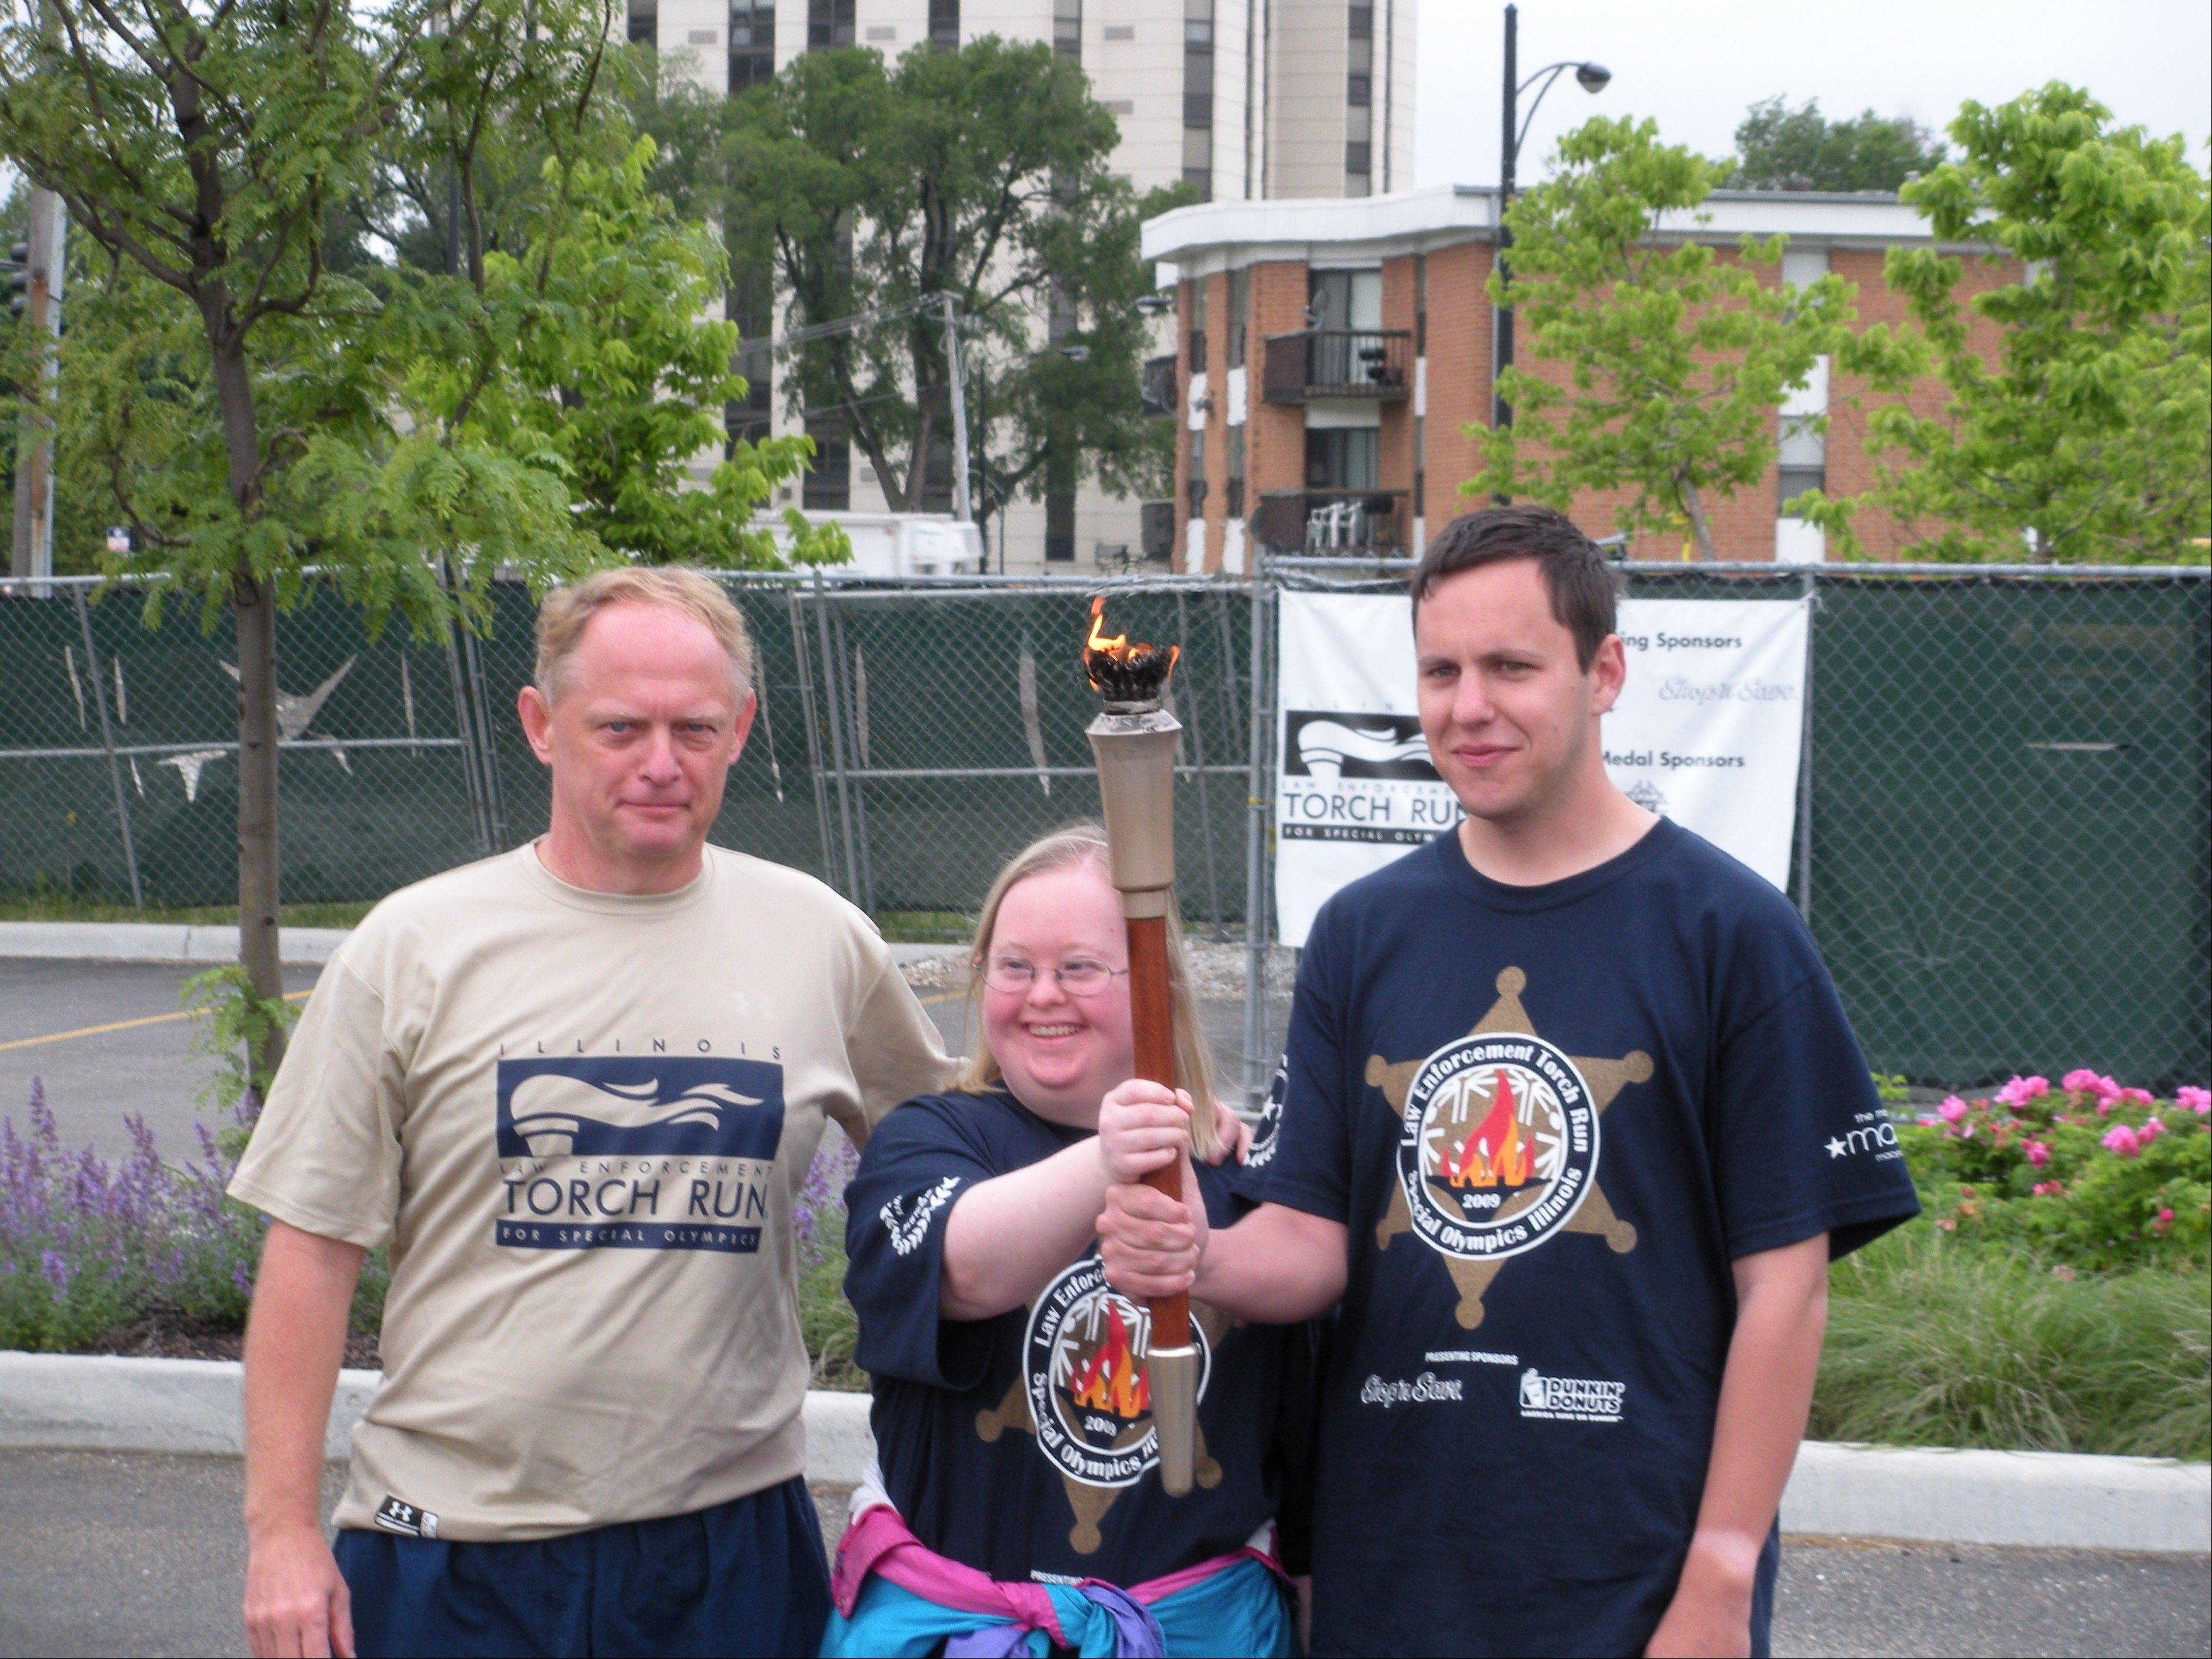 From left, Ken Veach, Molly Veach and Kenny O'Reilly, son of retired Cook County sheriff's officer Kit O'Reilly, after they competed in the World Games in Dublin.